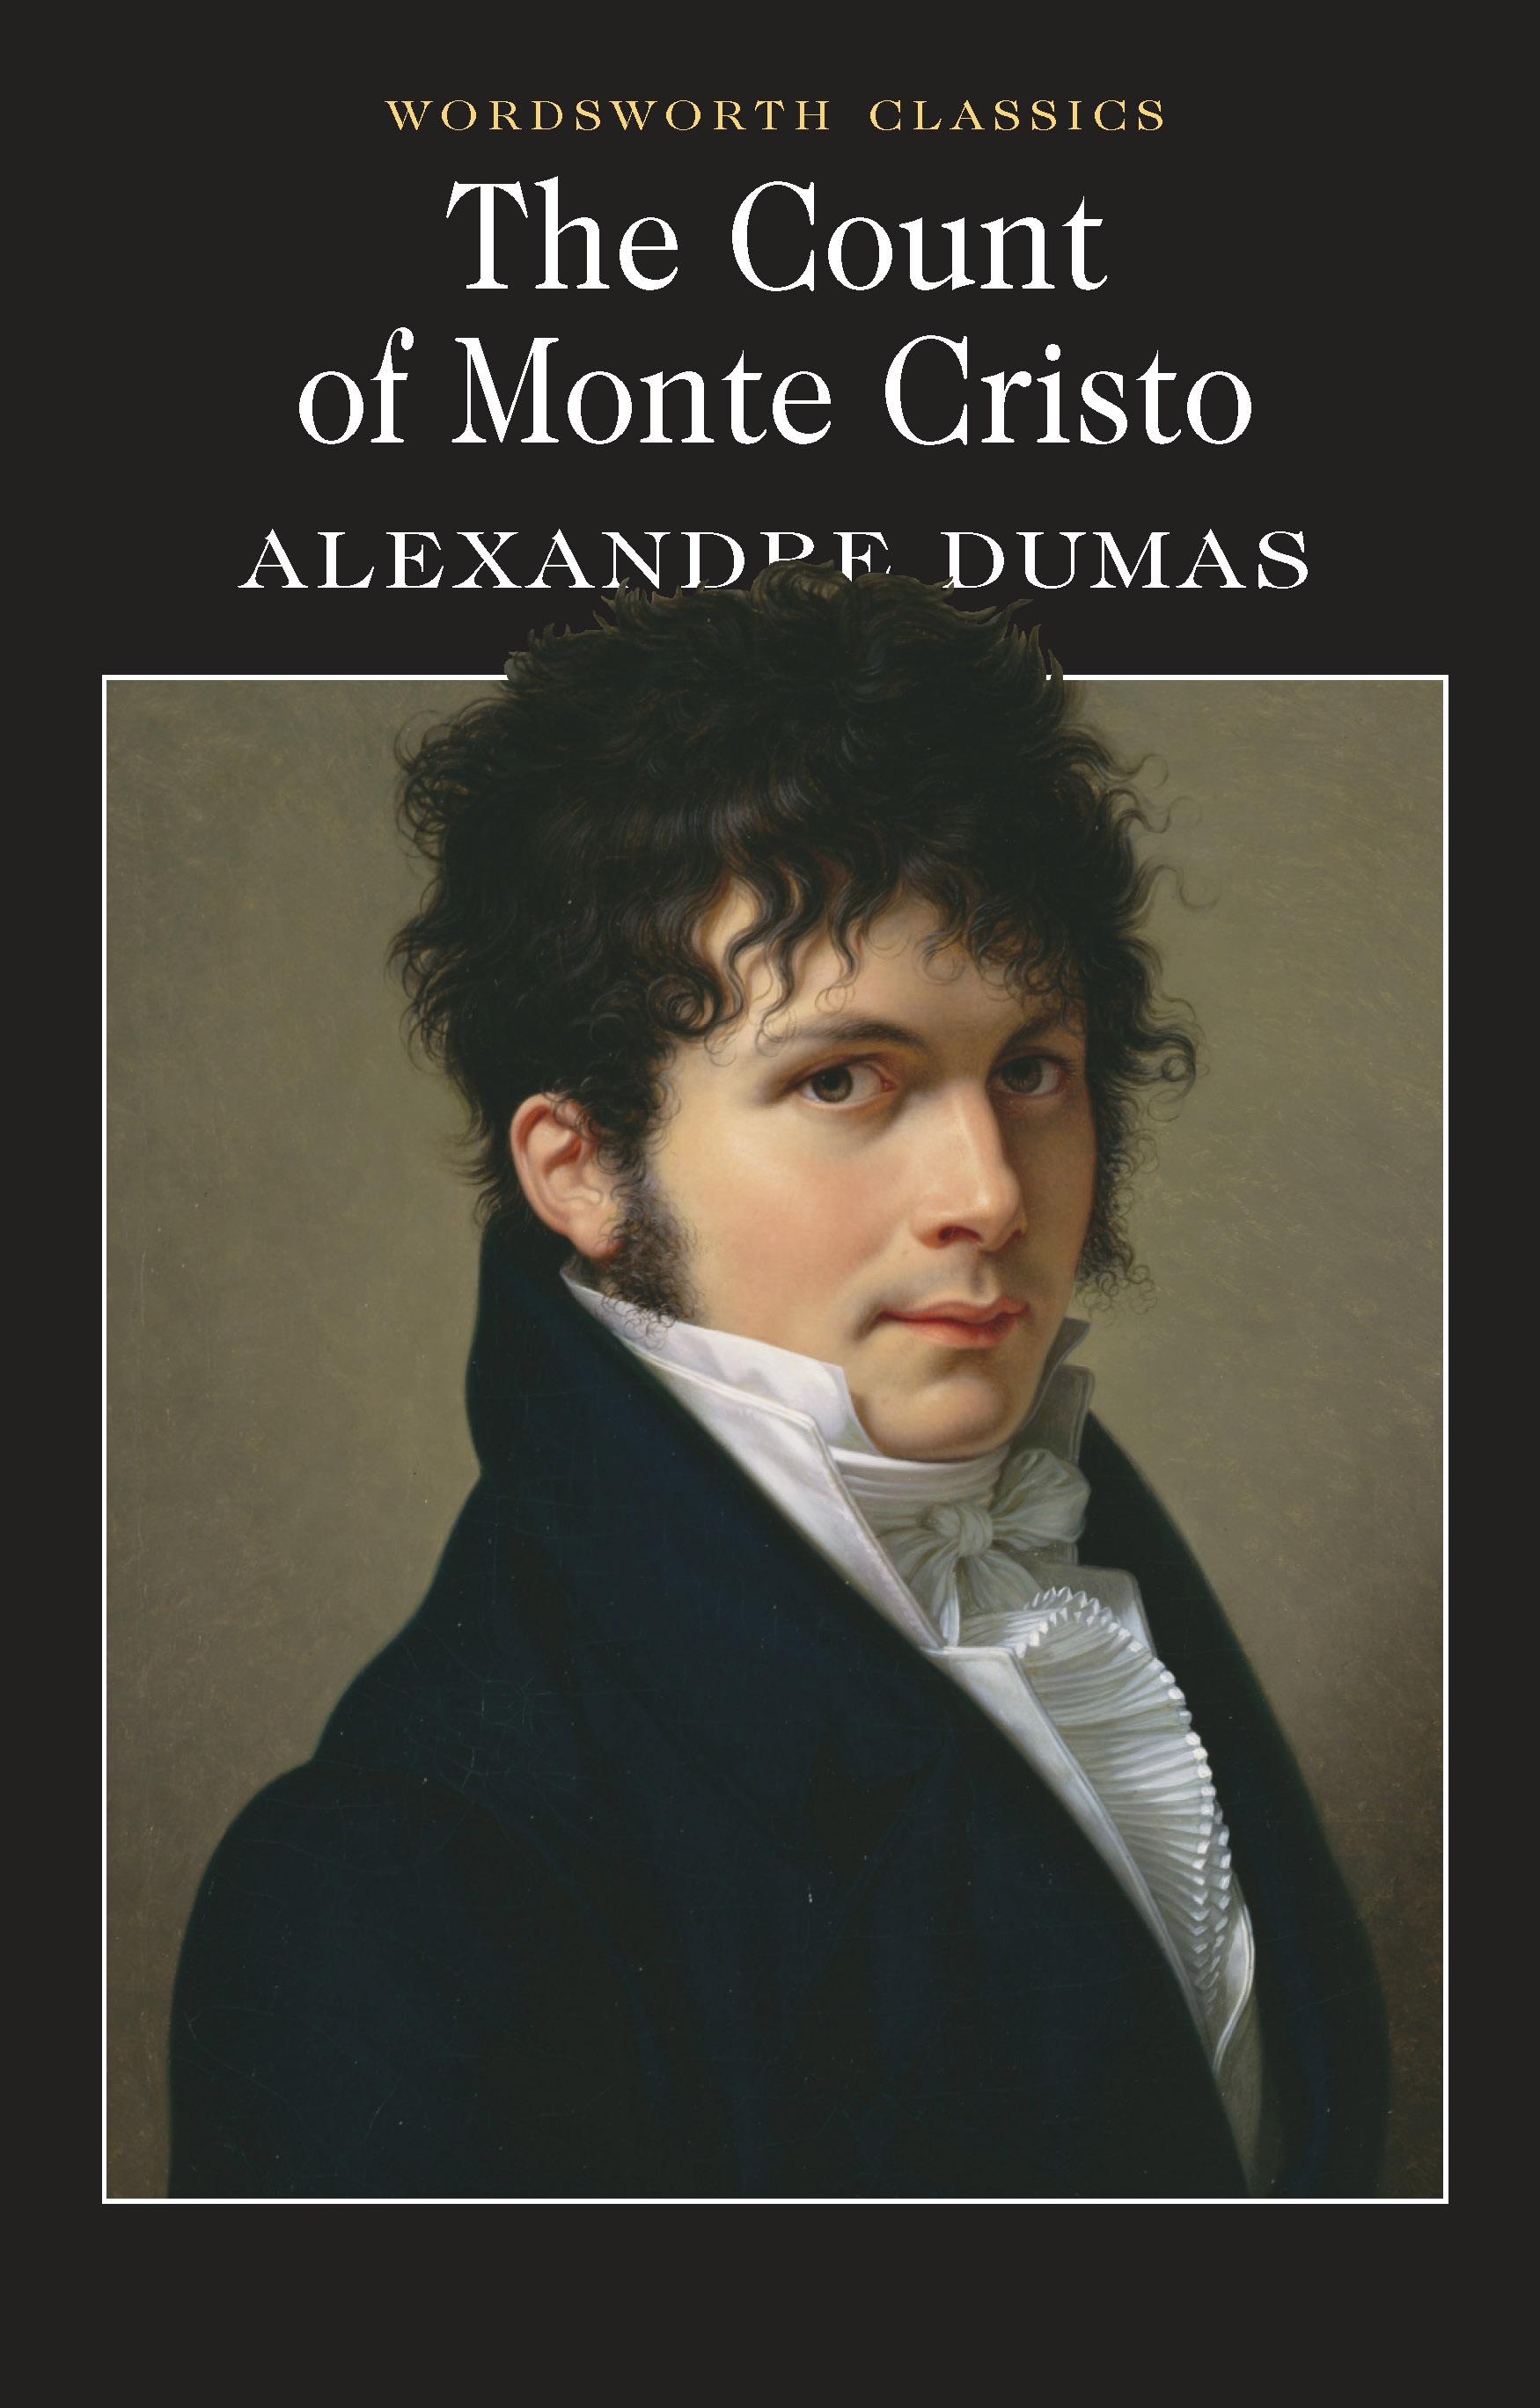 The Count of Monte Cristo (disambiguation)